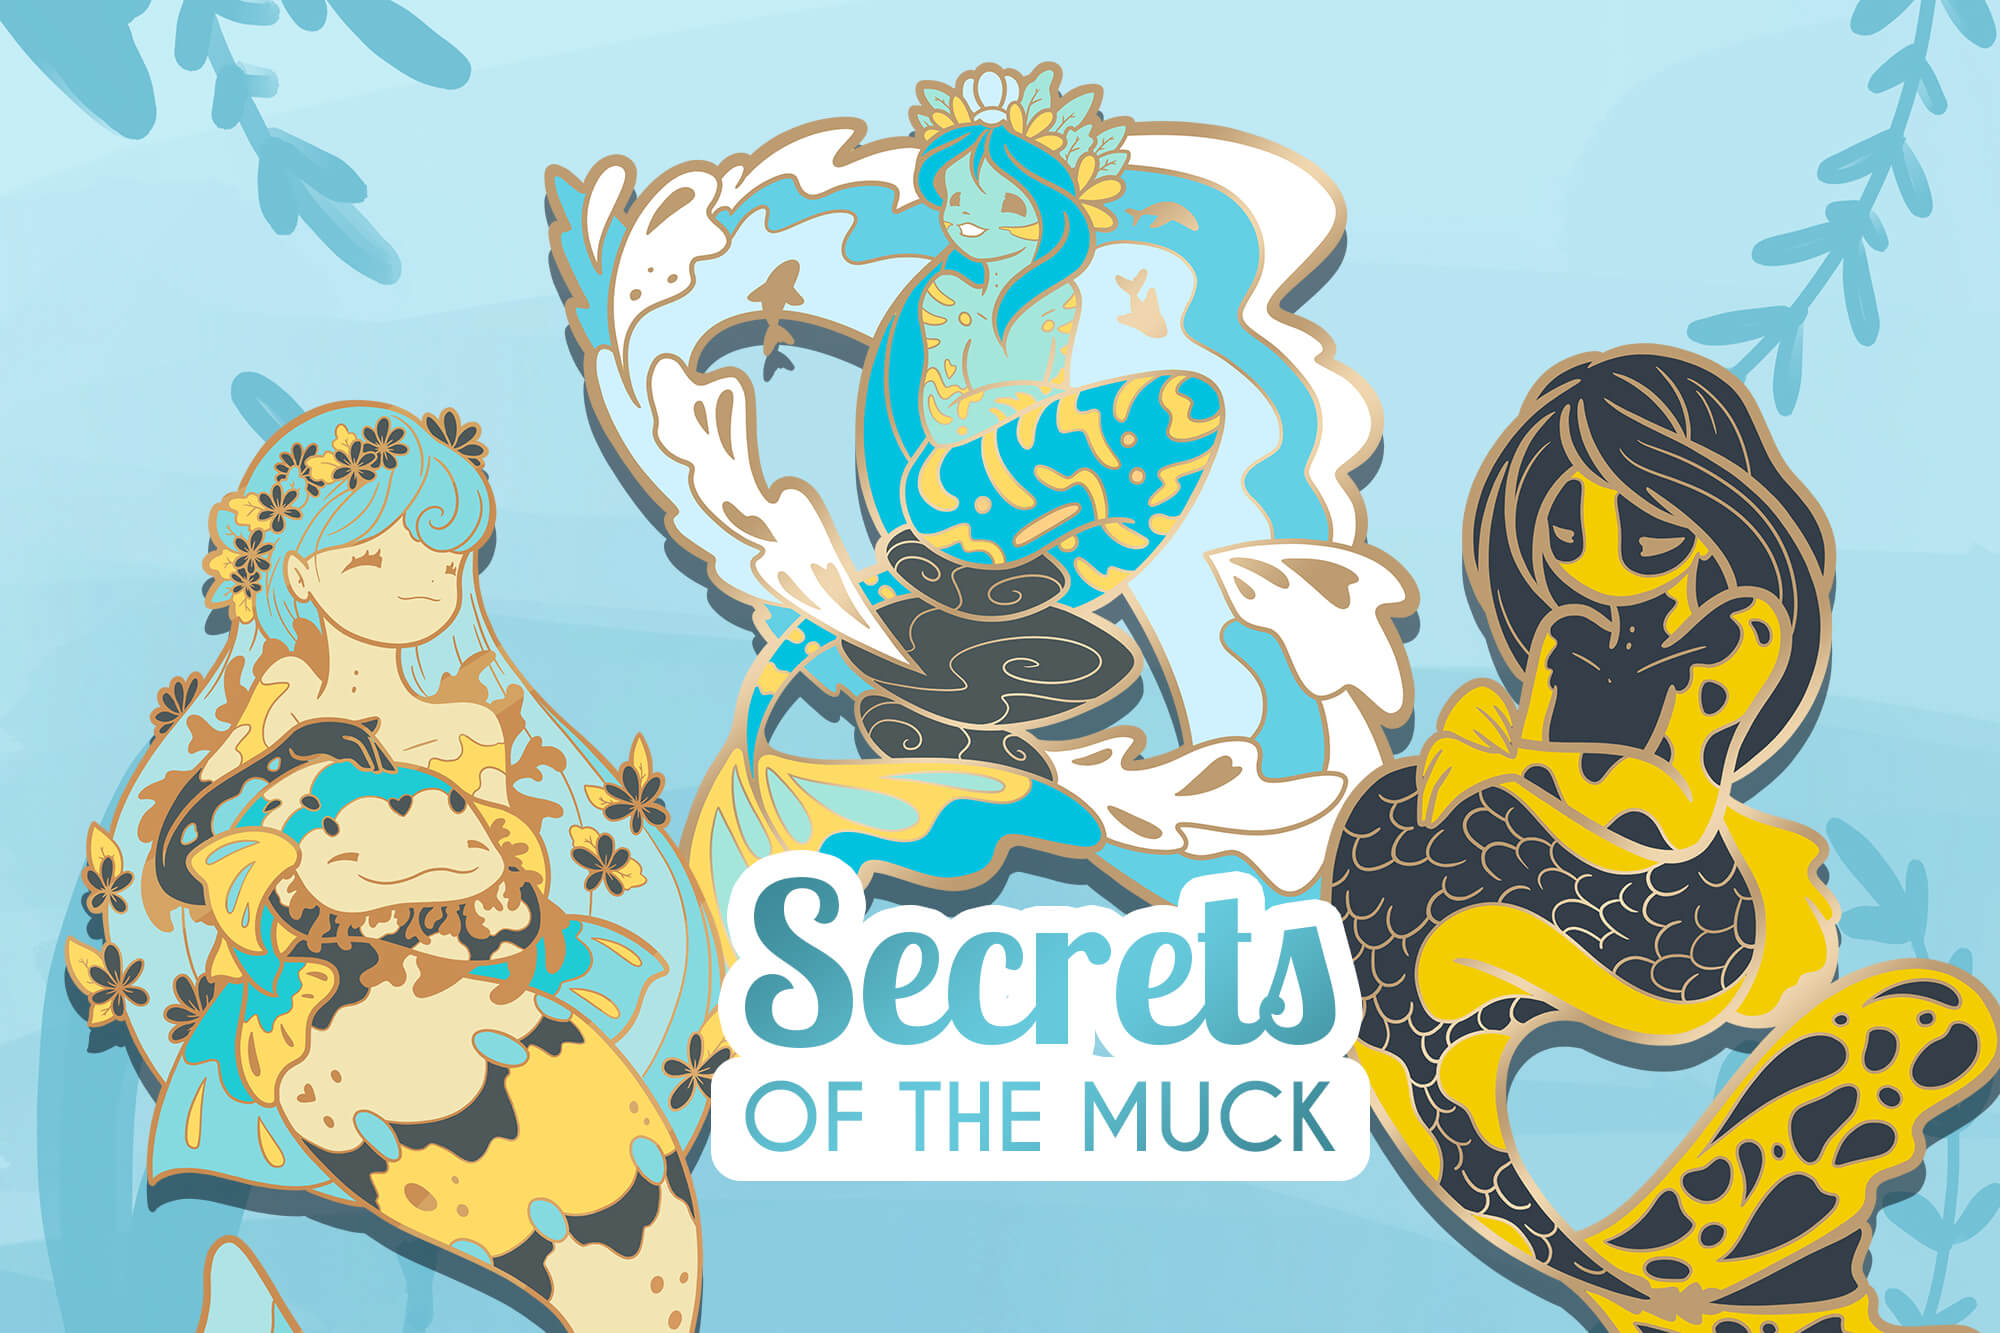 SECRETS OF THE MUCK